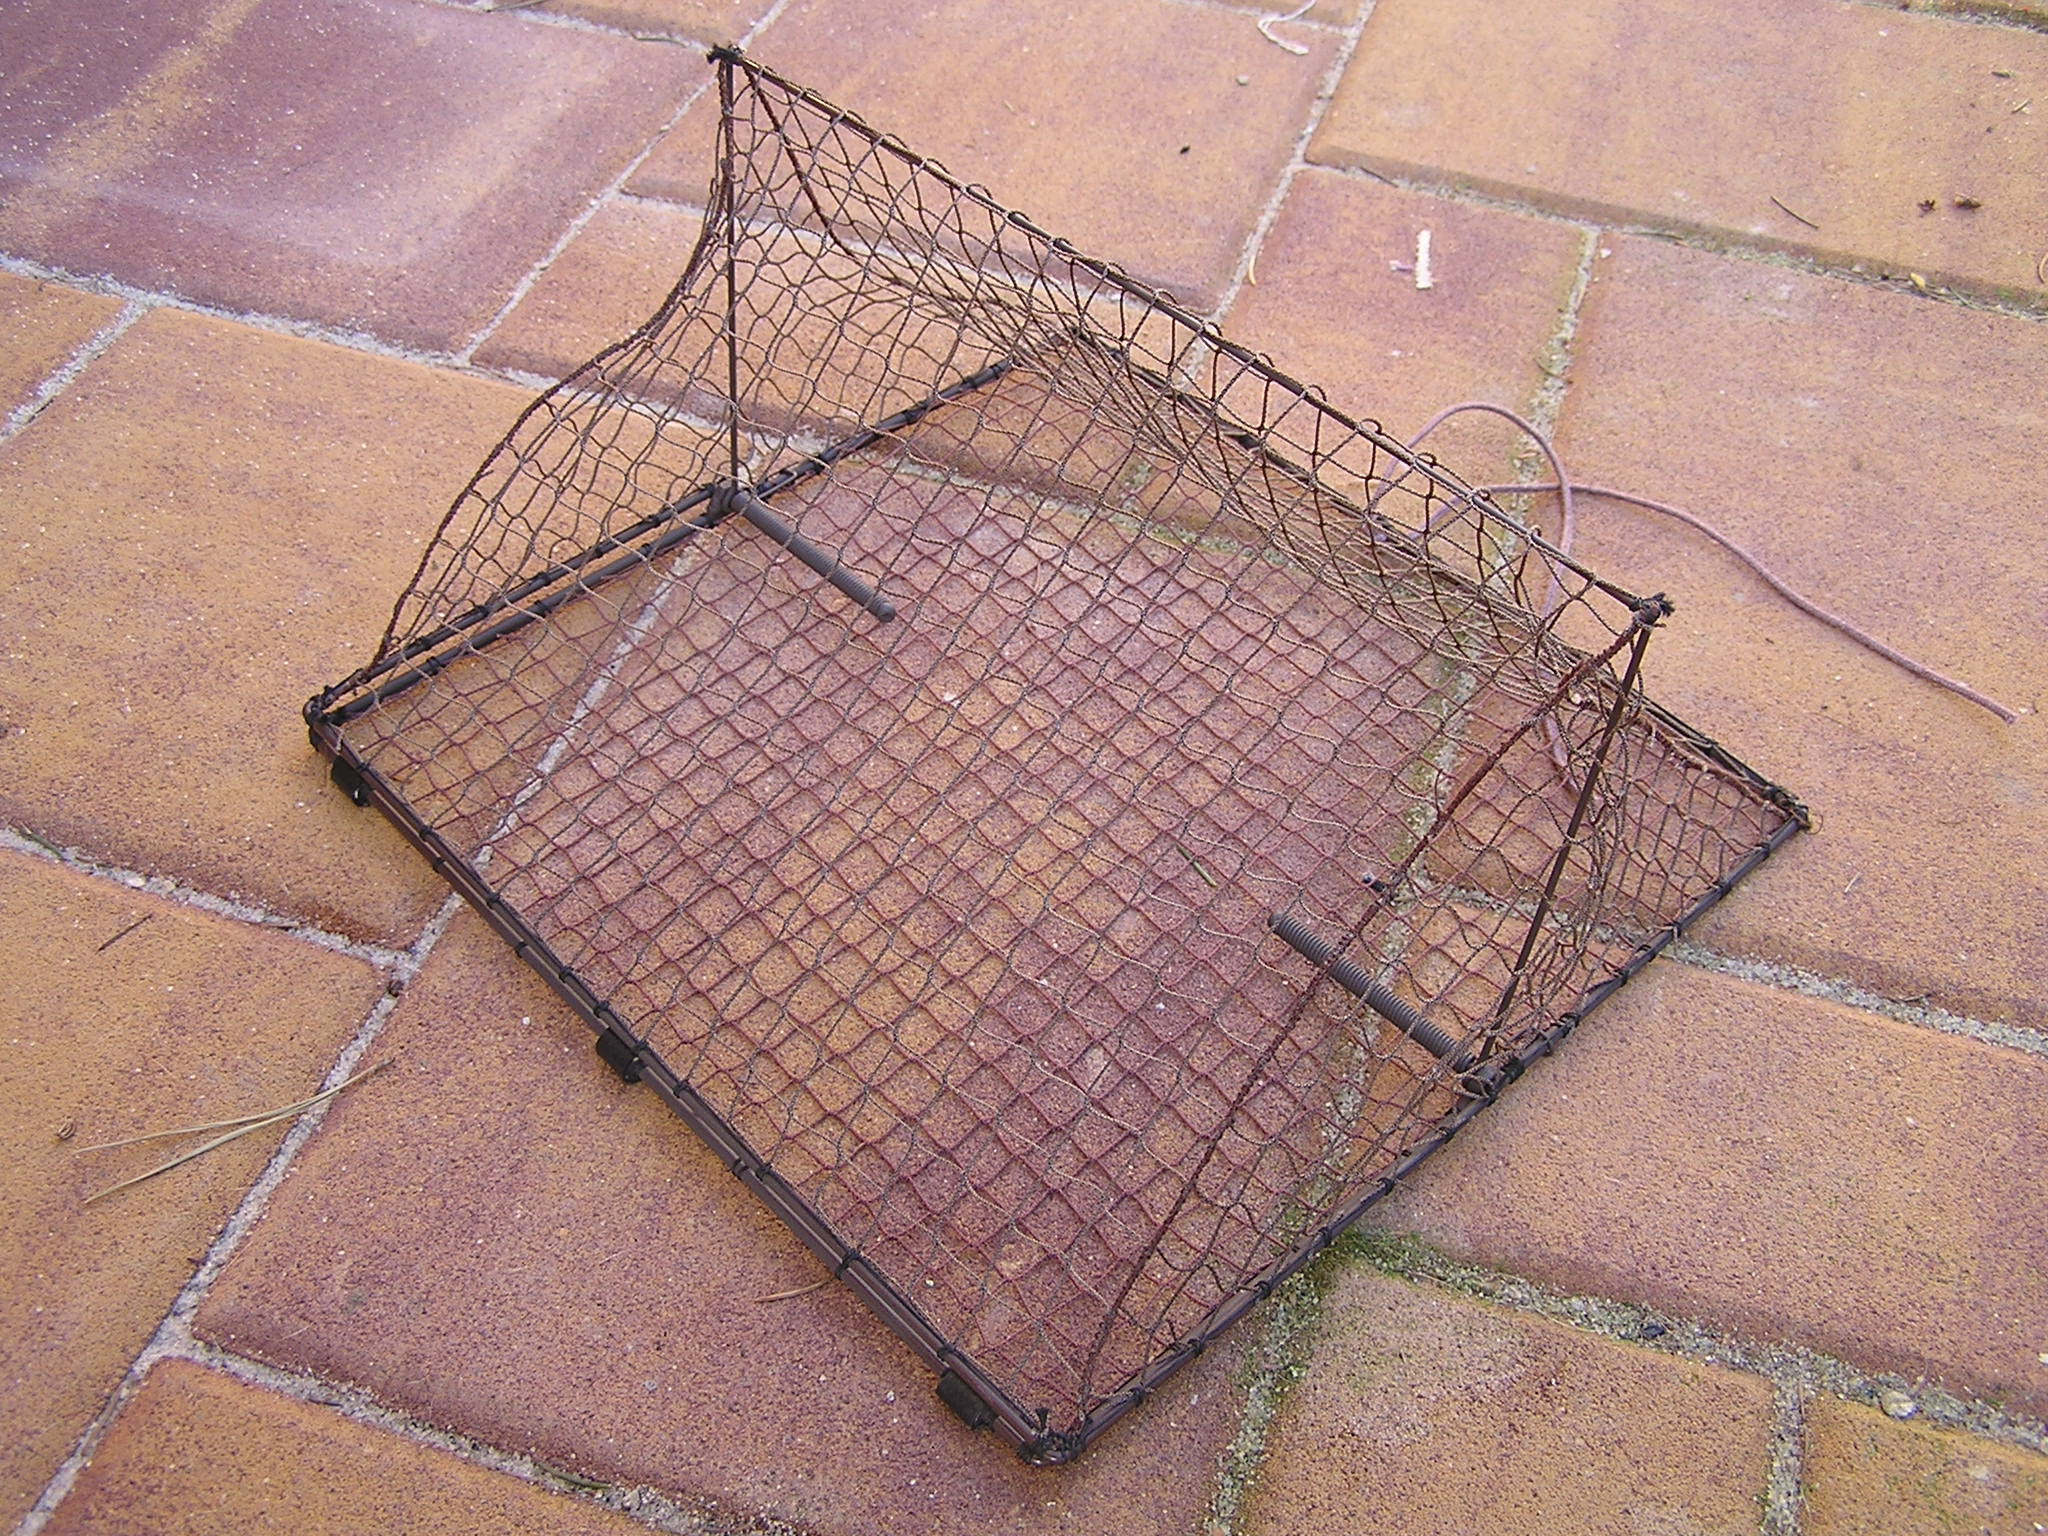 TSB25 - Tent spring trap for trapping small birds. Base dimensions: 25x25 cm